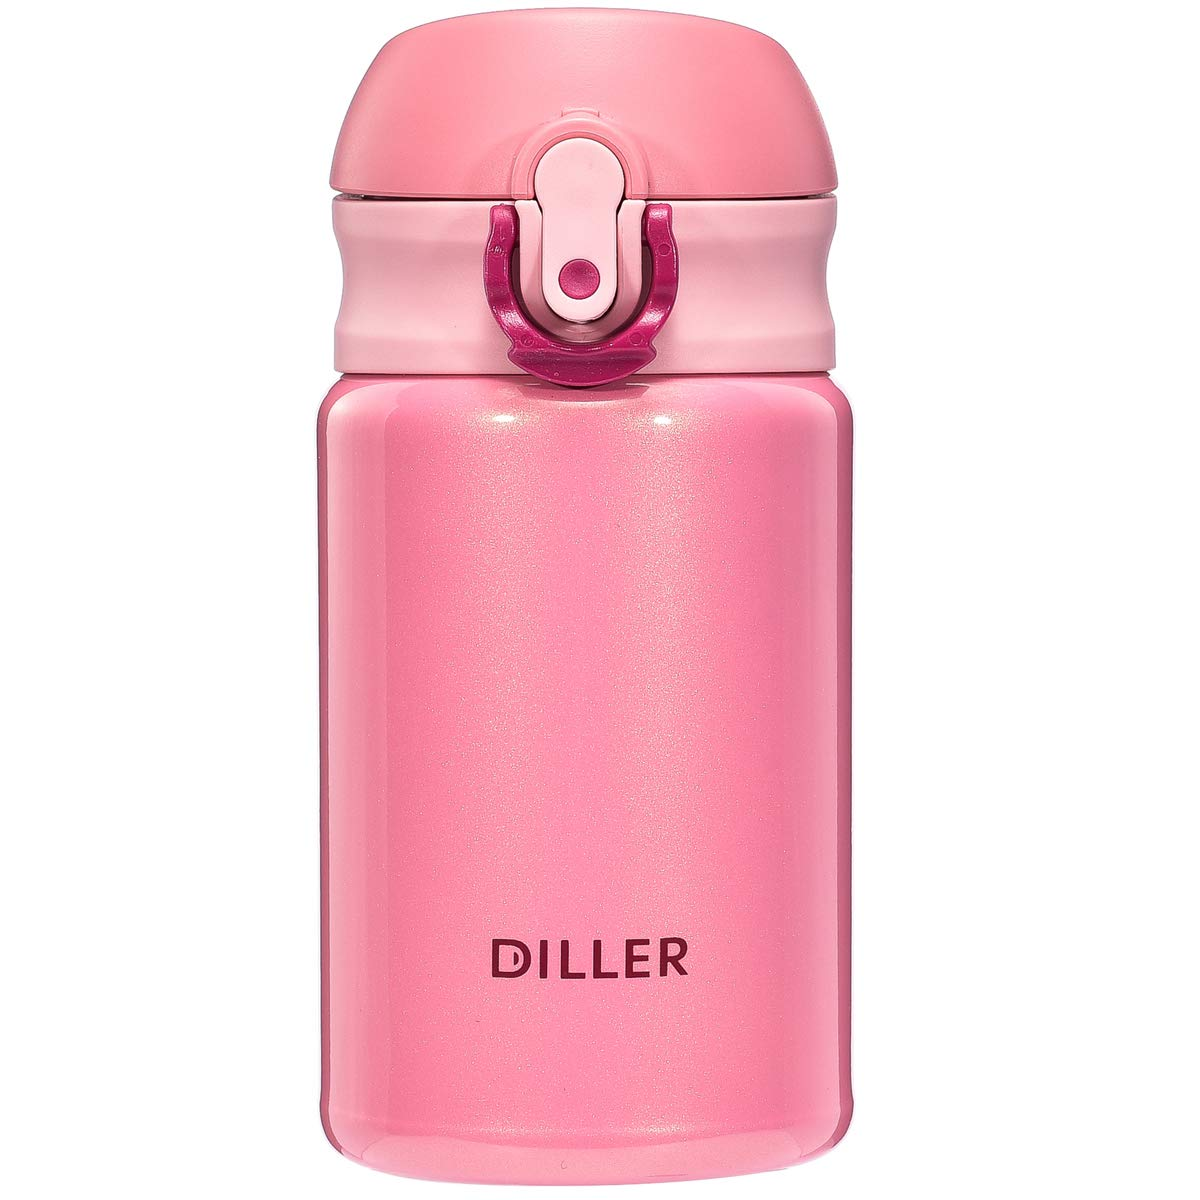 Diller Thermos Water Bottle - 10 Oz Mini Insulated Stainless Steel Bottle, Leakproof Cute Vacuum Flask, Perfect for Purse or Kids Lunch Bag, 12 Hours Hot & 24 Hours Cold (Pink, 10 oz)